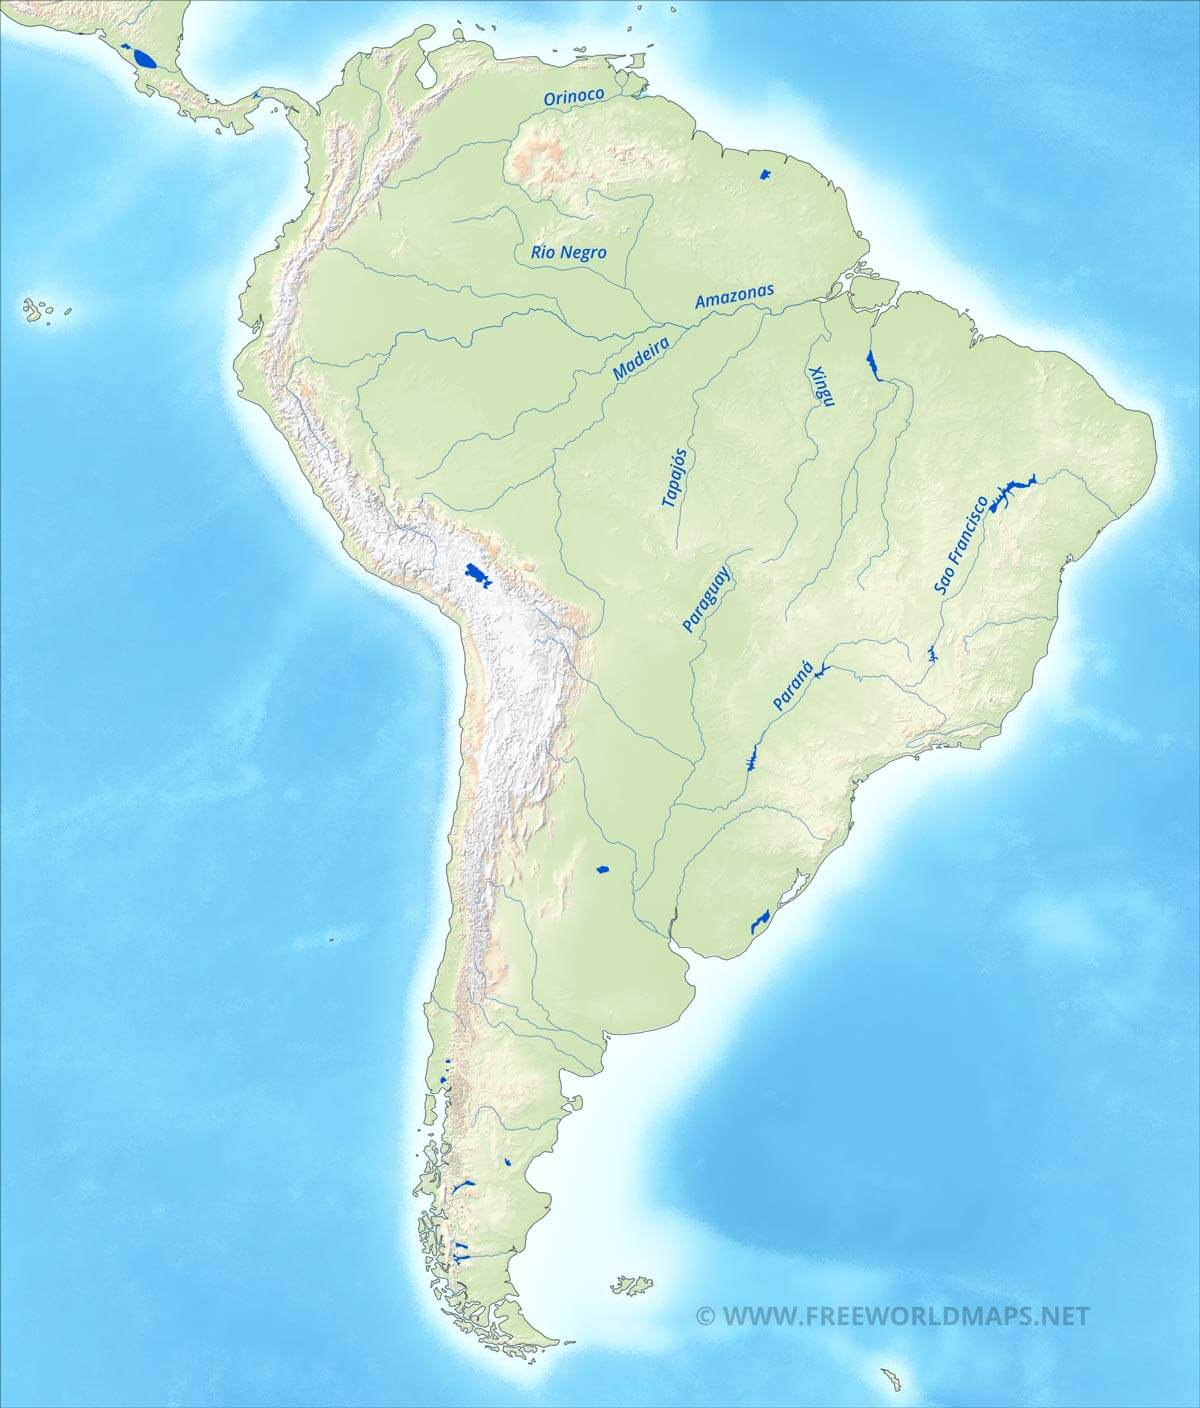 South America Physical Map – Freeworldmaps.net on peopling of the americas, mercator projection of the americas, geological map of the americas, language map of the americas, physical map southern africa, physical features of america, physical map china, world map of the americas, outline map of the americas, physical map sub-saharan africa, historical map of the americas, topographic map of the americas,